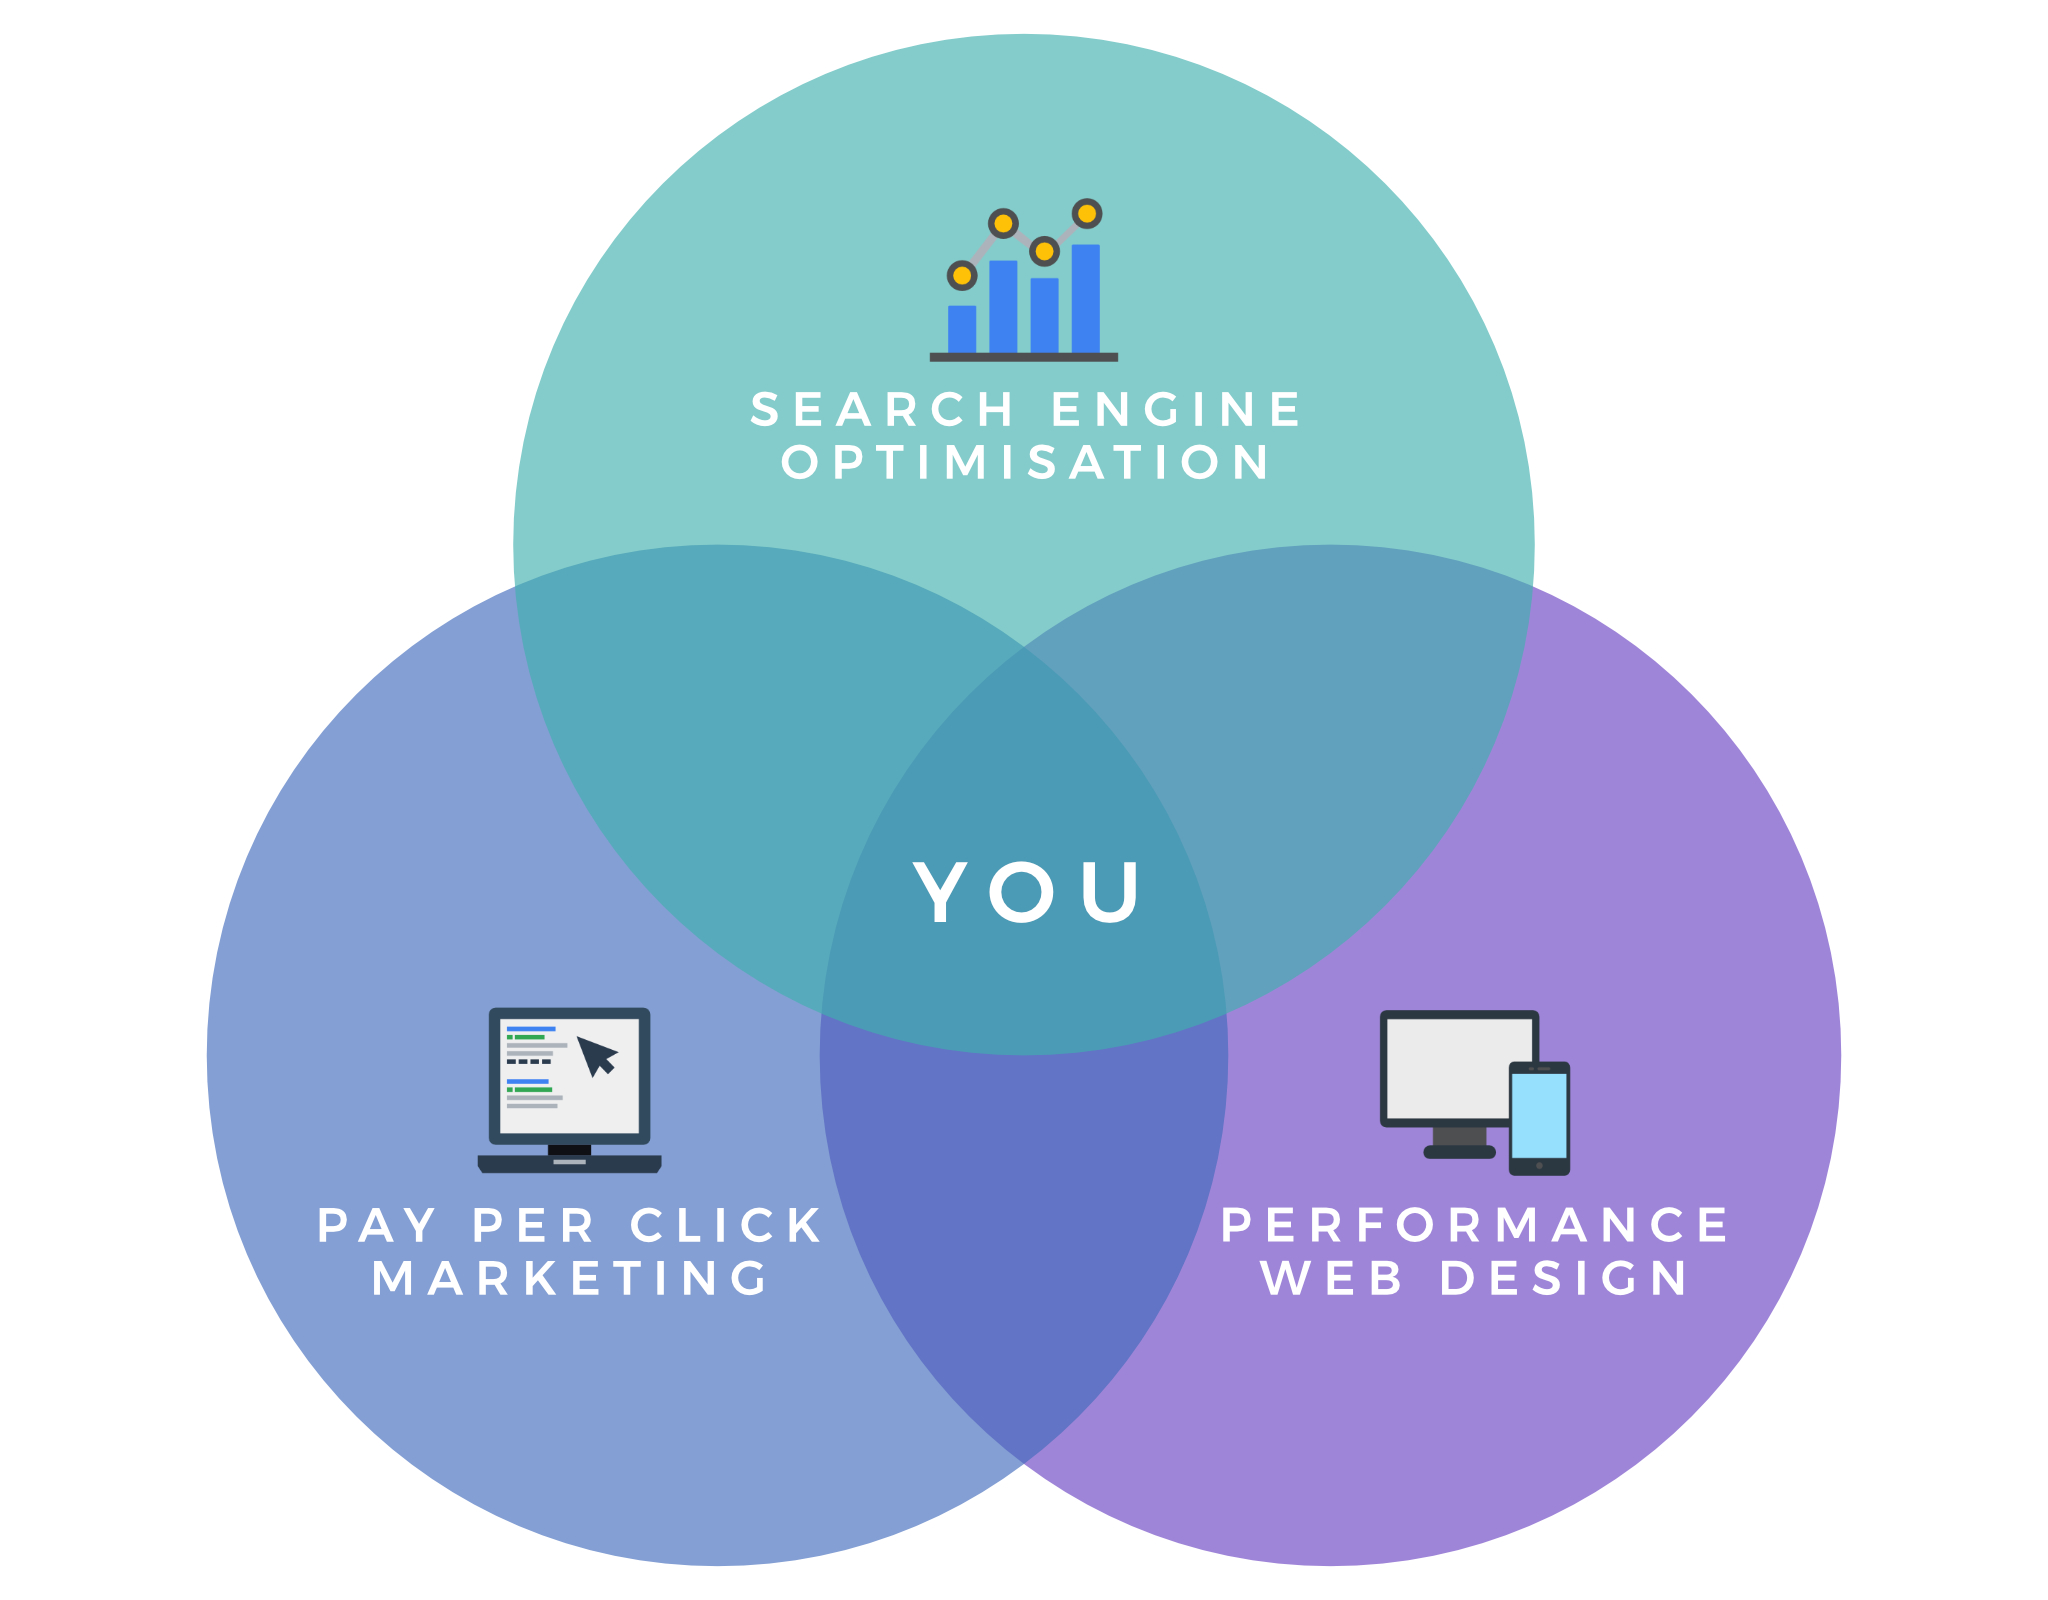 Venn Diagram - Illustrating The Relationship between Search Engine Optimisation, Web Design & Pay Per Click Marketing